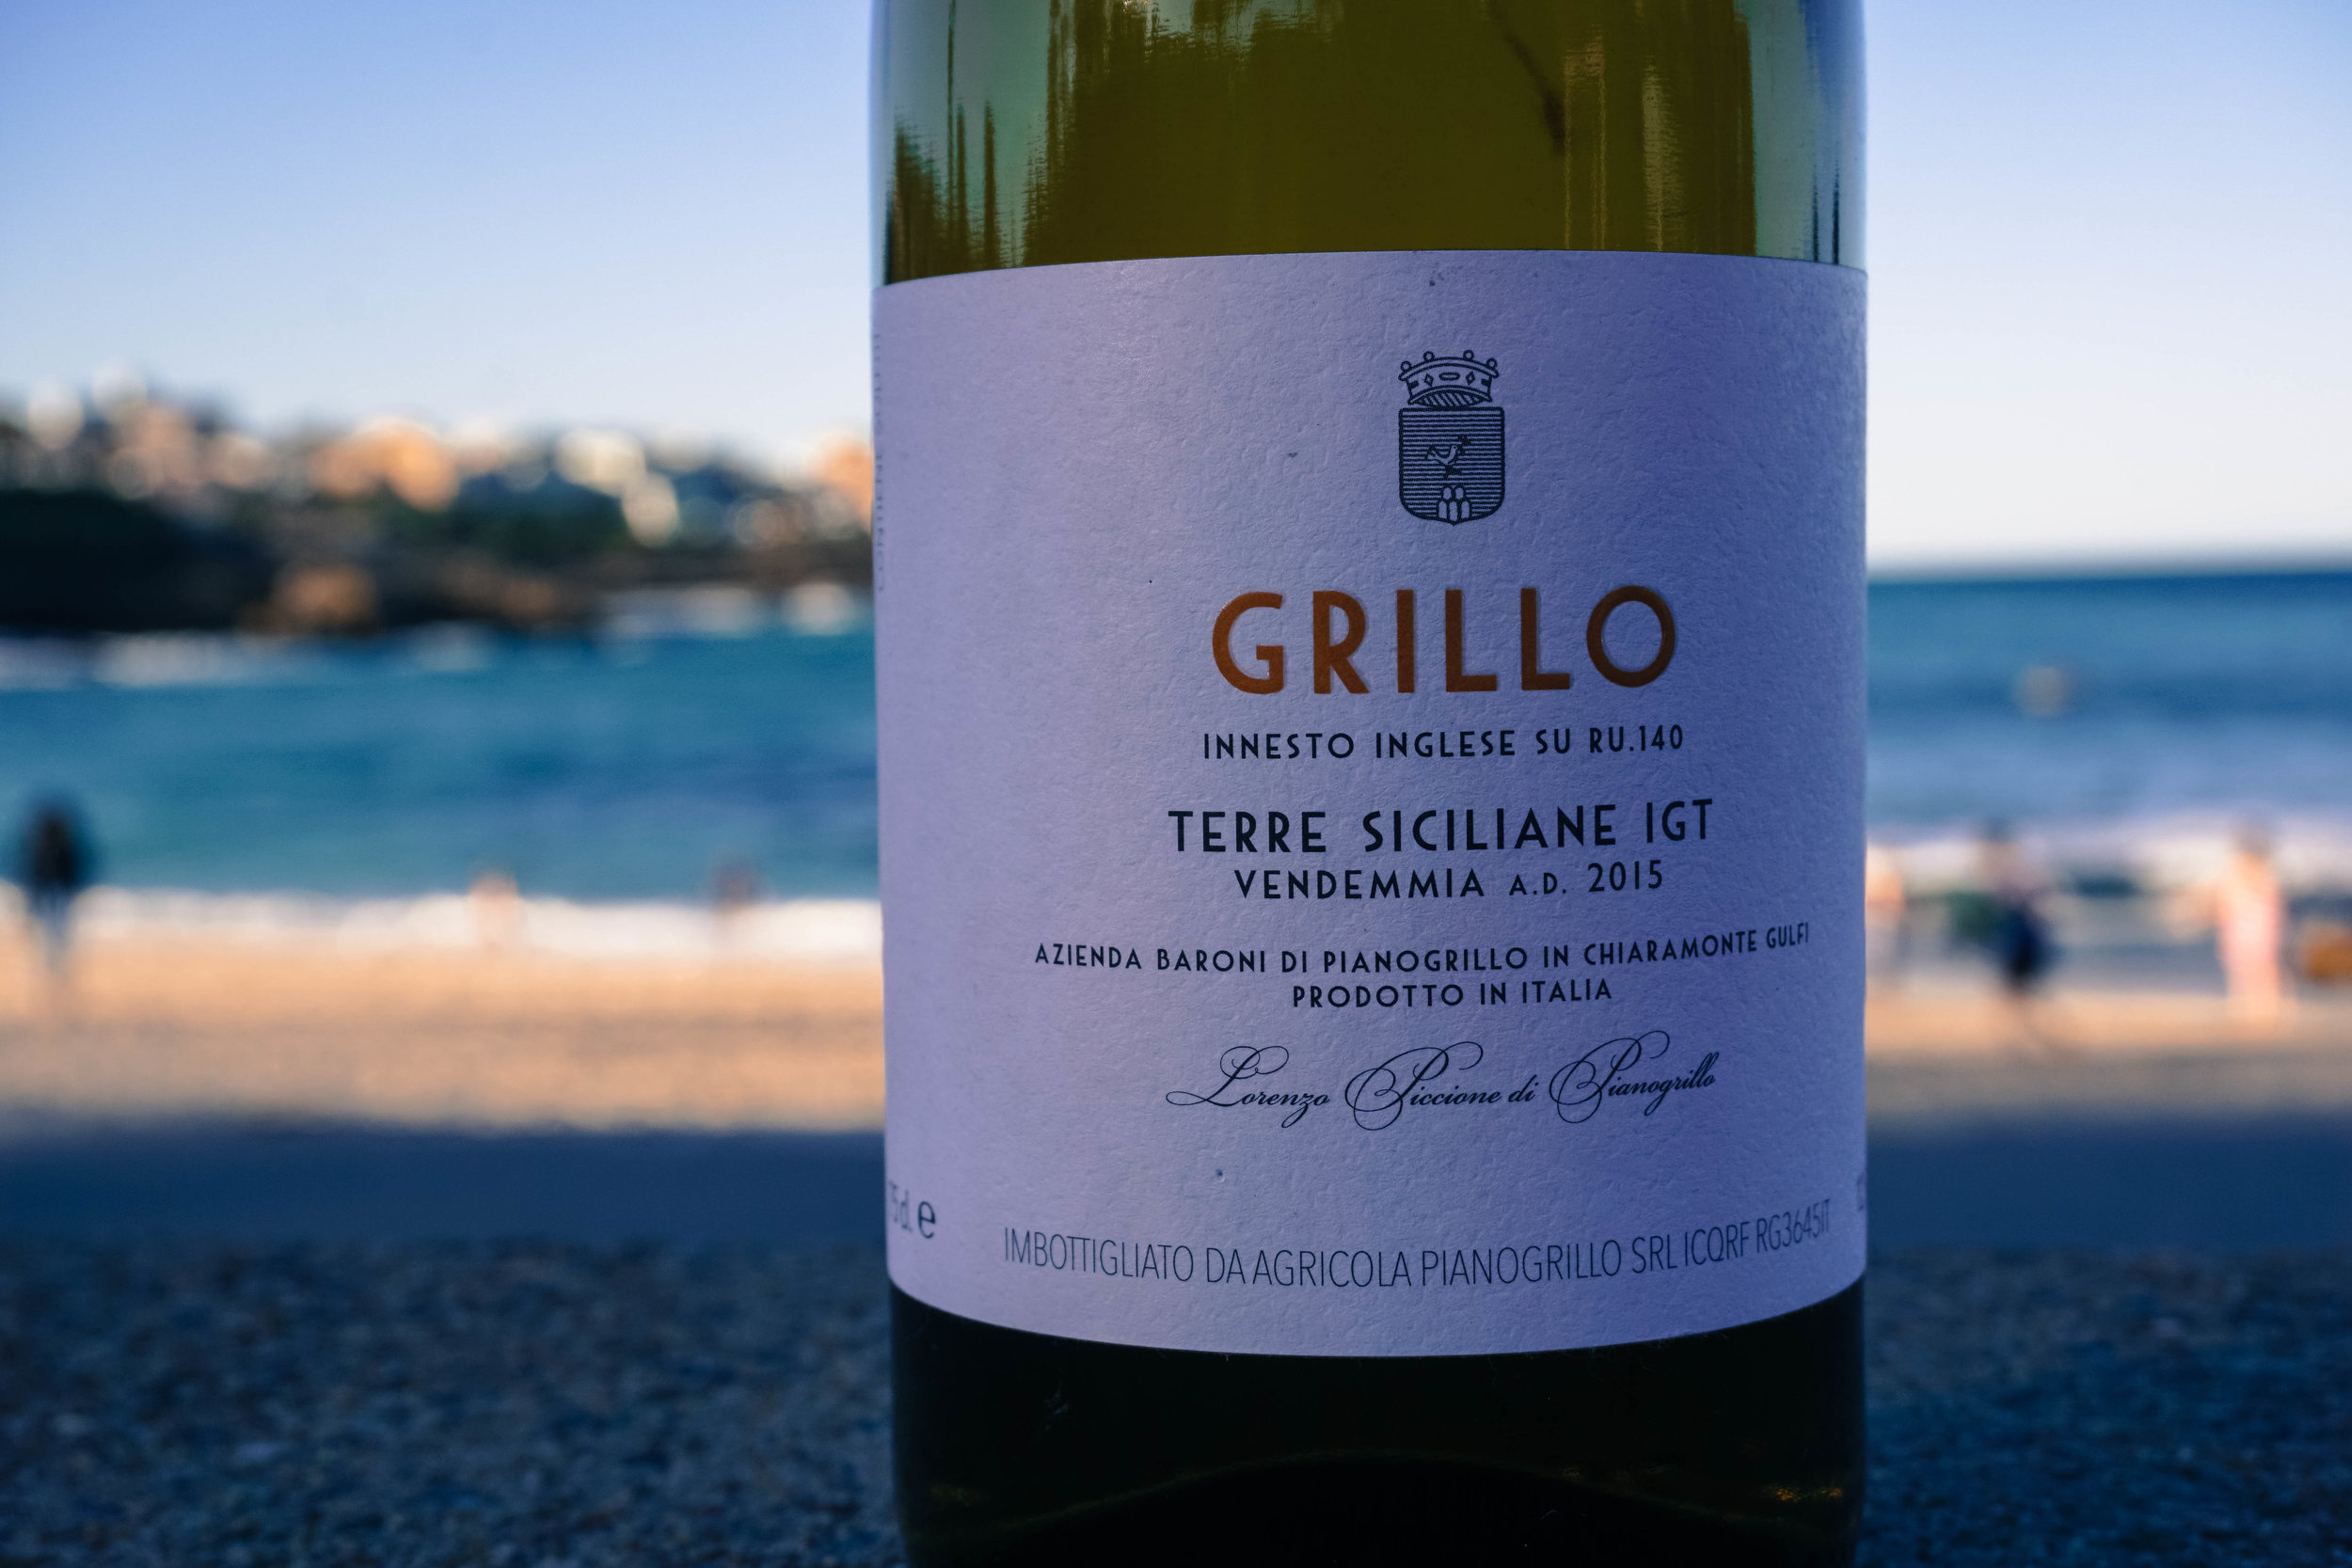 2015 ~ Baroni di Pianogrillo - Grillo Certified Organic   10yr old Grillo sourced from the marl (calcareous clay-based soil) and chalky, dry grown soils on the estate at 480m elevation. Destemmed and fermented on skins for 7 days in an open top concrete vessel, then transferred to stainless for 6 months and left on lees until bottling.  Unfiltered, unfined and only 50ppm sulphur at bottling.